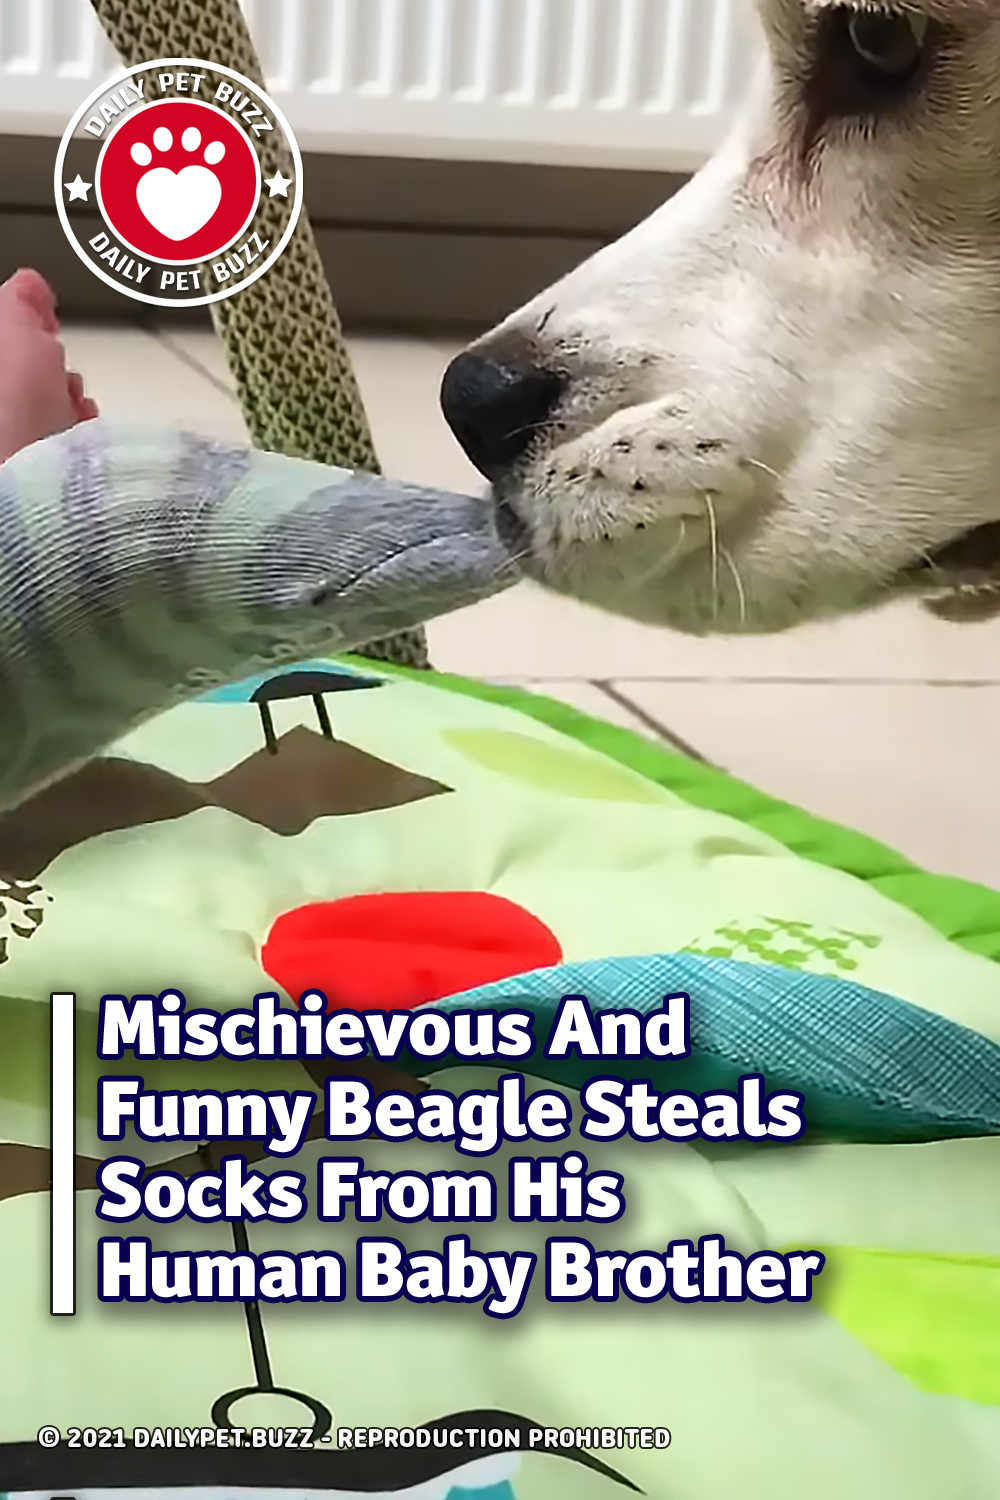 Mischievous And Funny Beagle Steals Socks From His Human Baby Brother